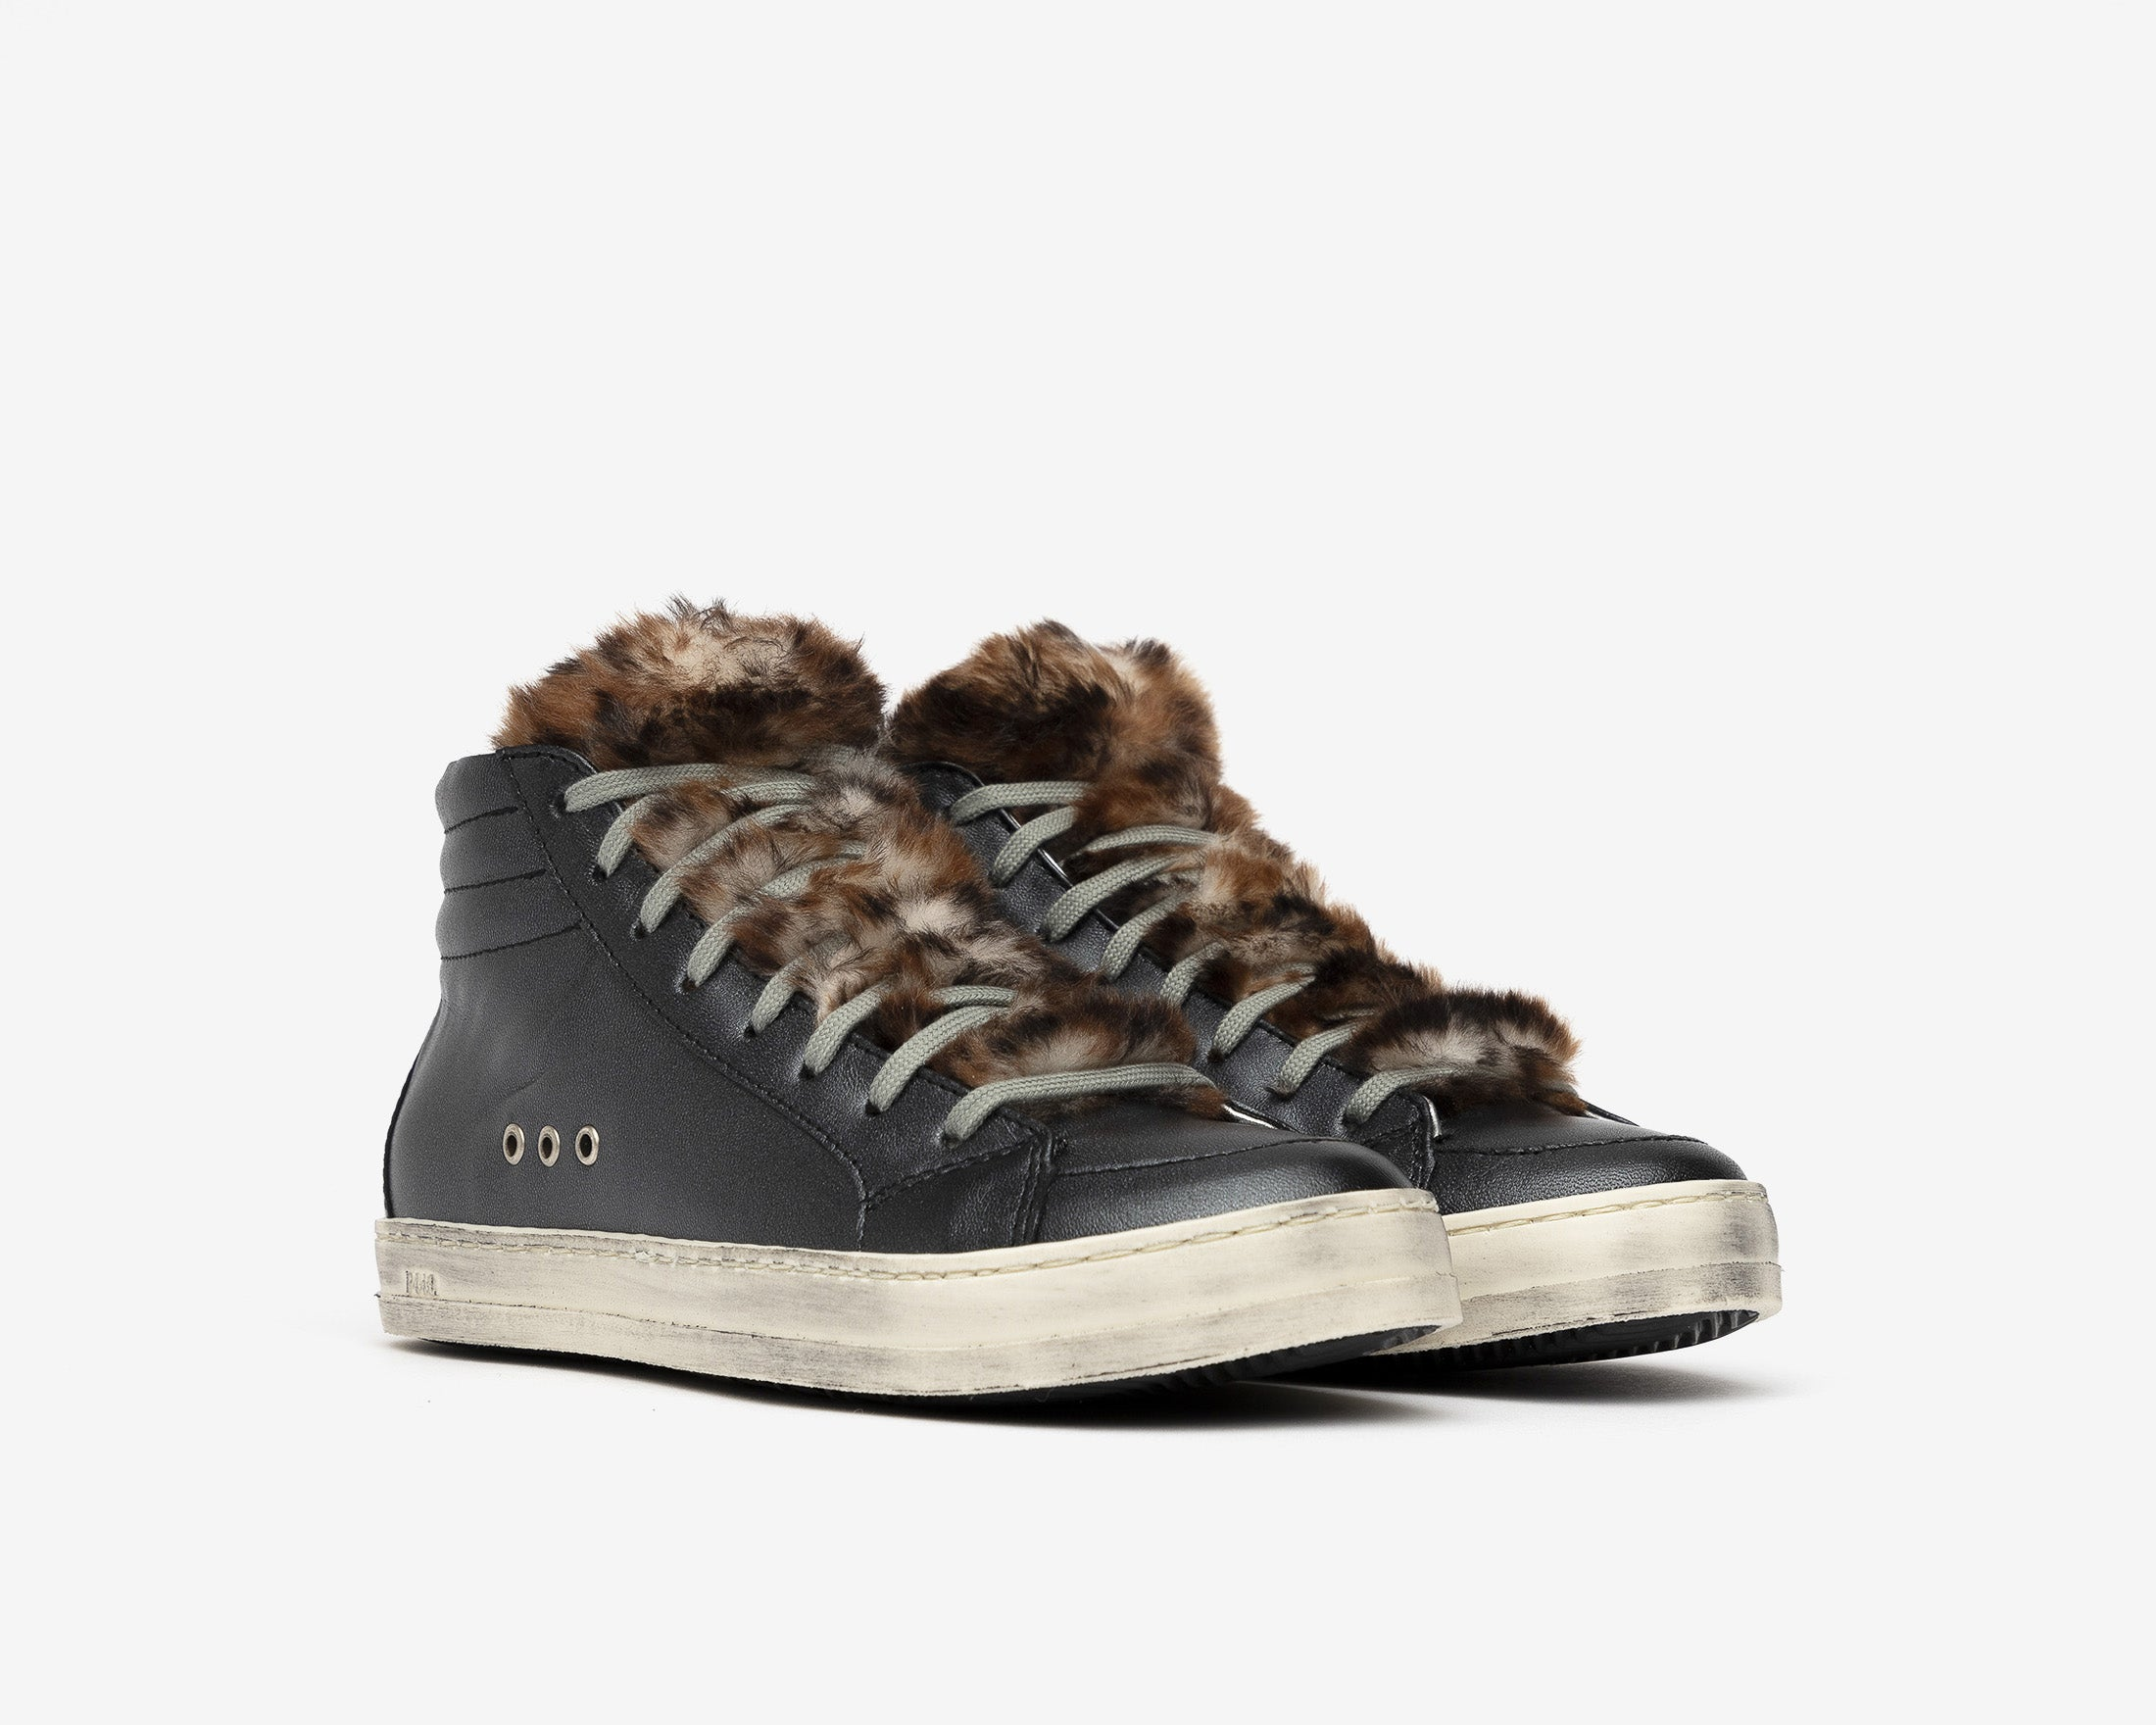 Skate High-Top Sneaker in Leopard Fur - Side